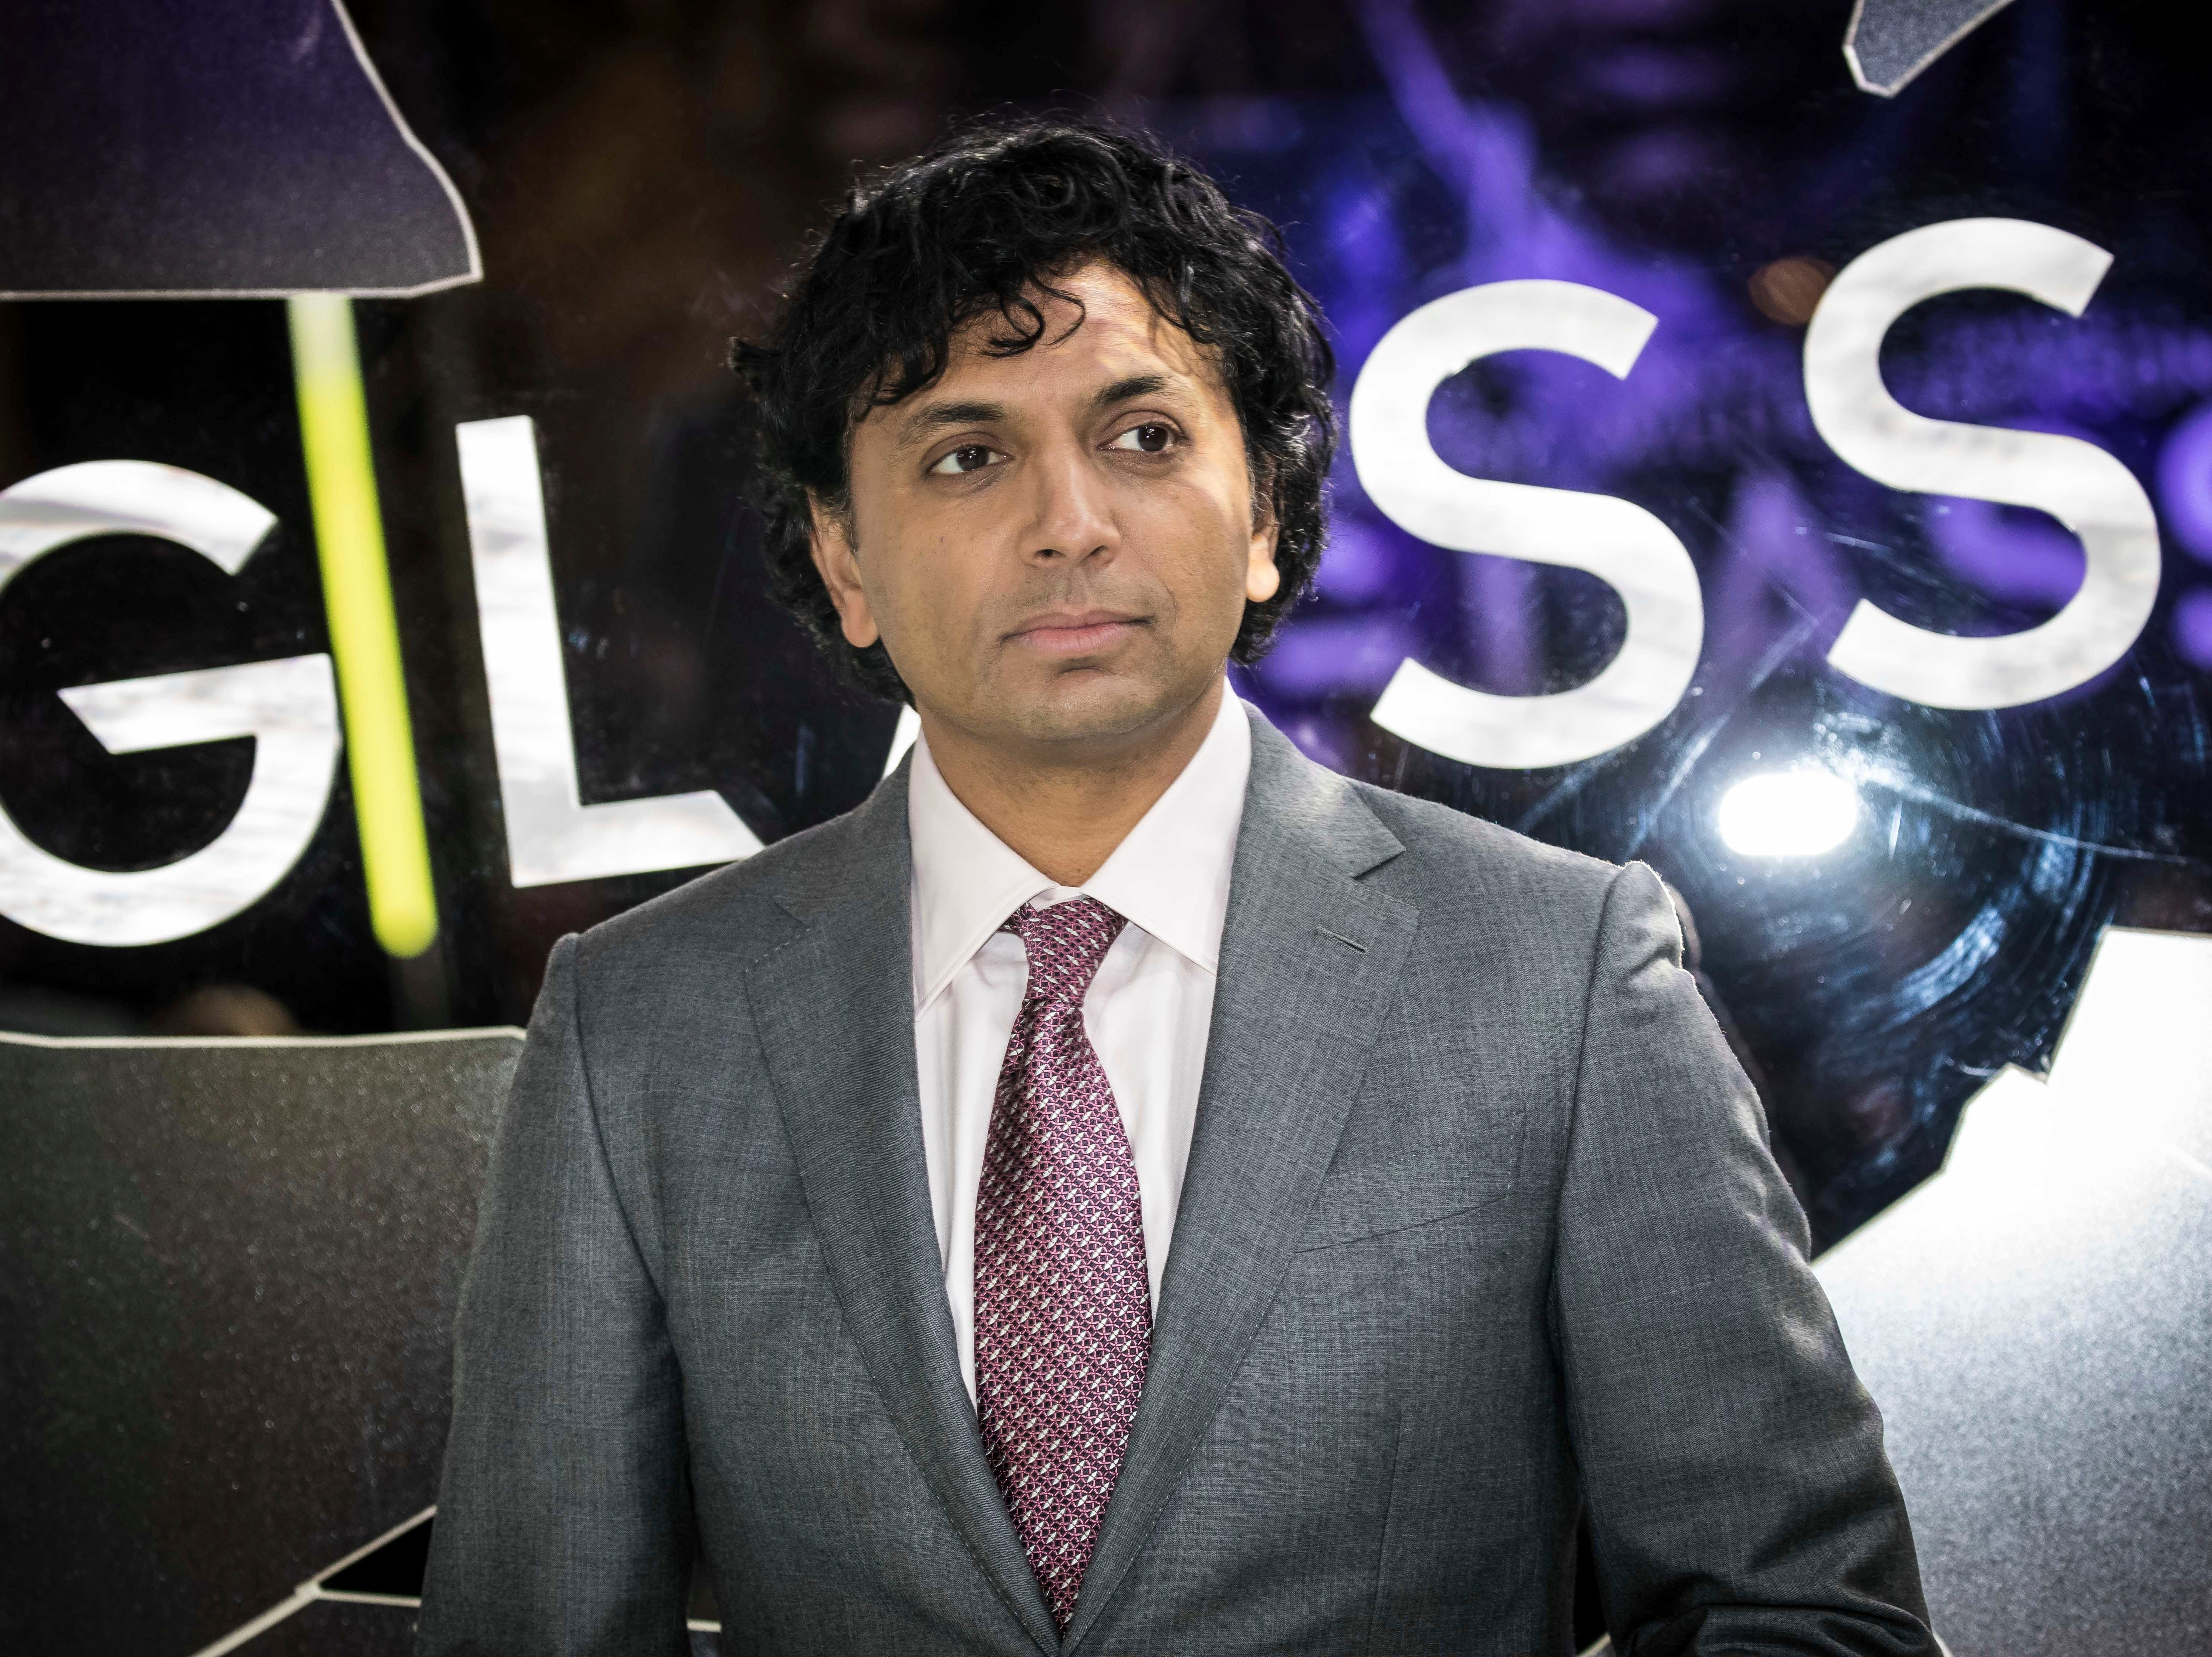 """Director M. Night Shyamalan poses for photographers upon arrival at the premiere of the film """"Glass"""" in London on Wednesday, Jan. 9, 2019."""